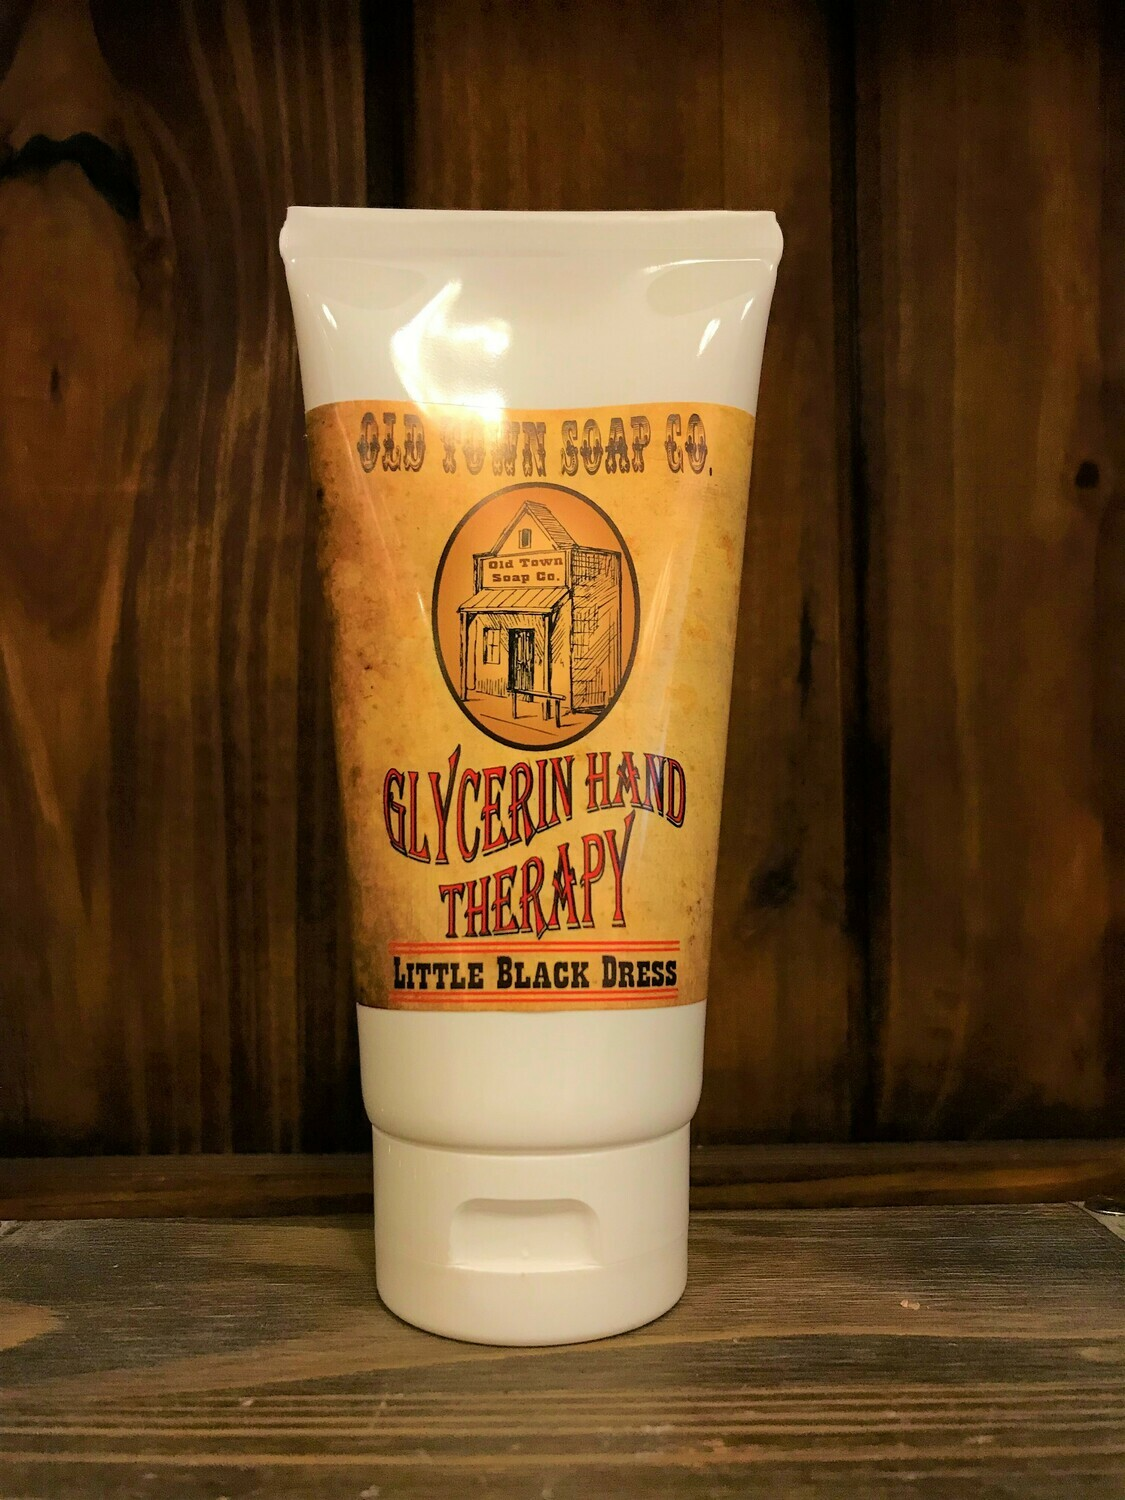 Little Black Dress -6oz Tube Hand Therapy